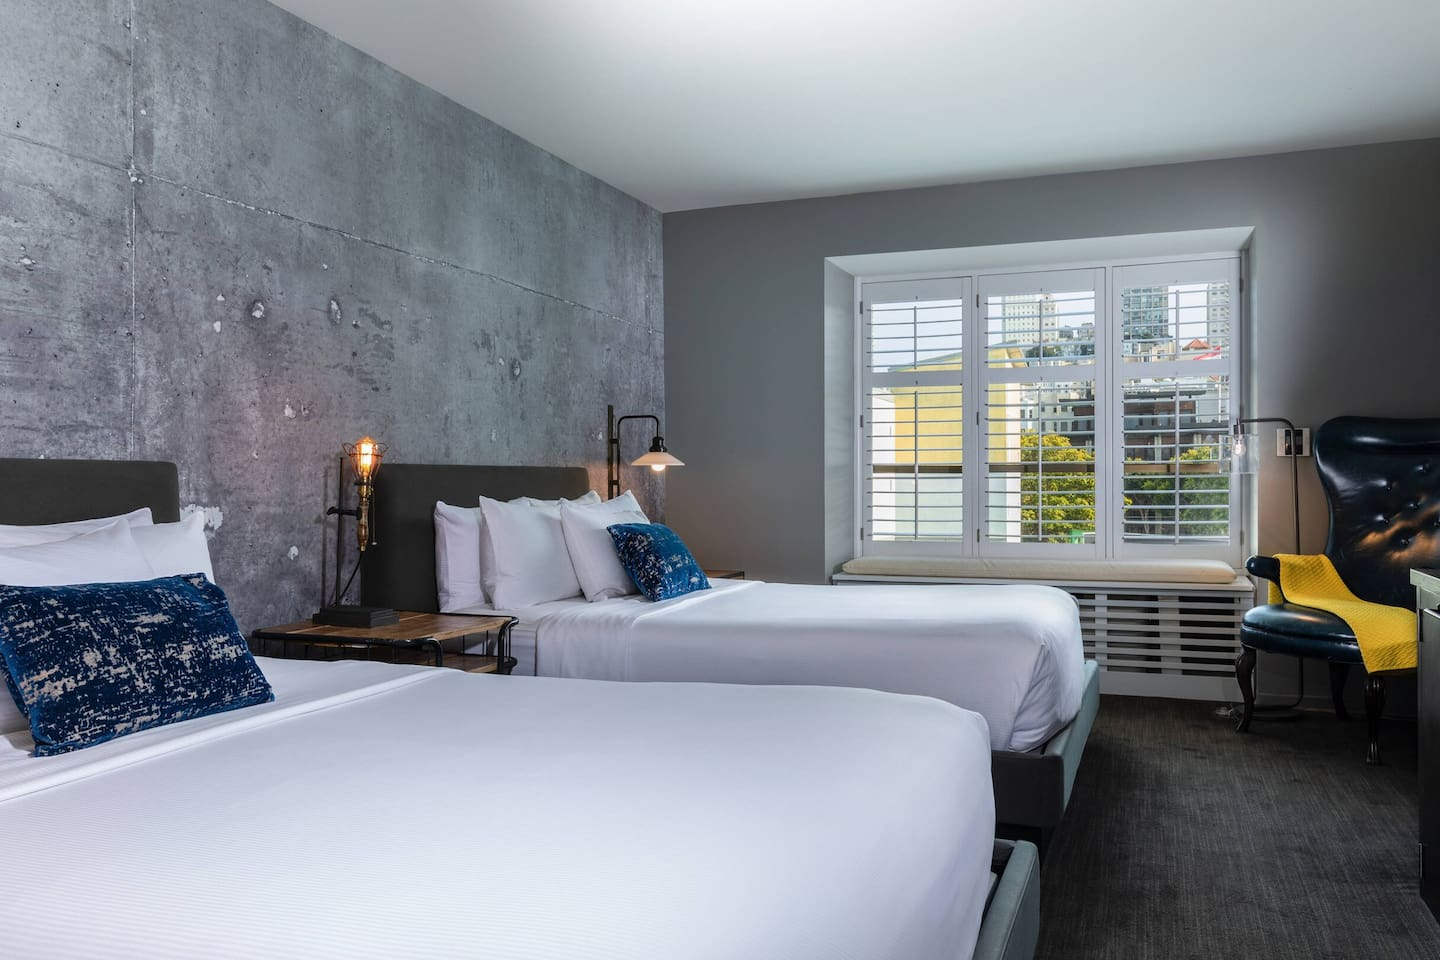 Double Queen Room with city views